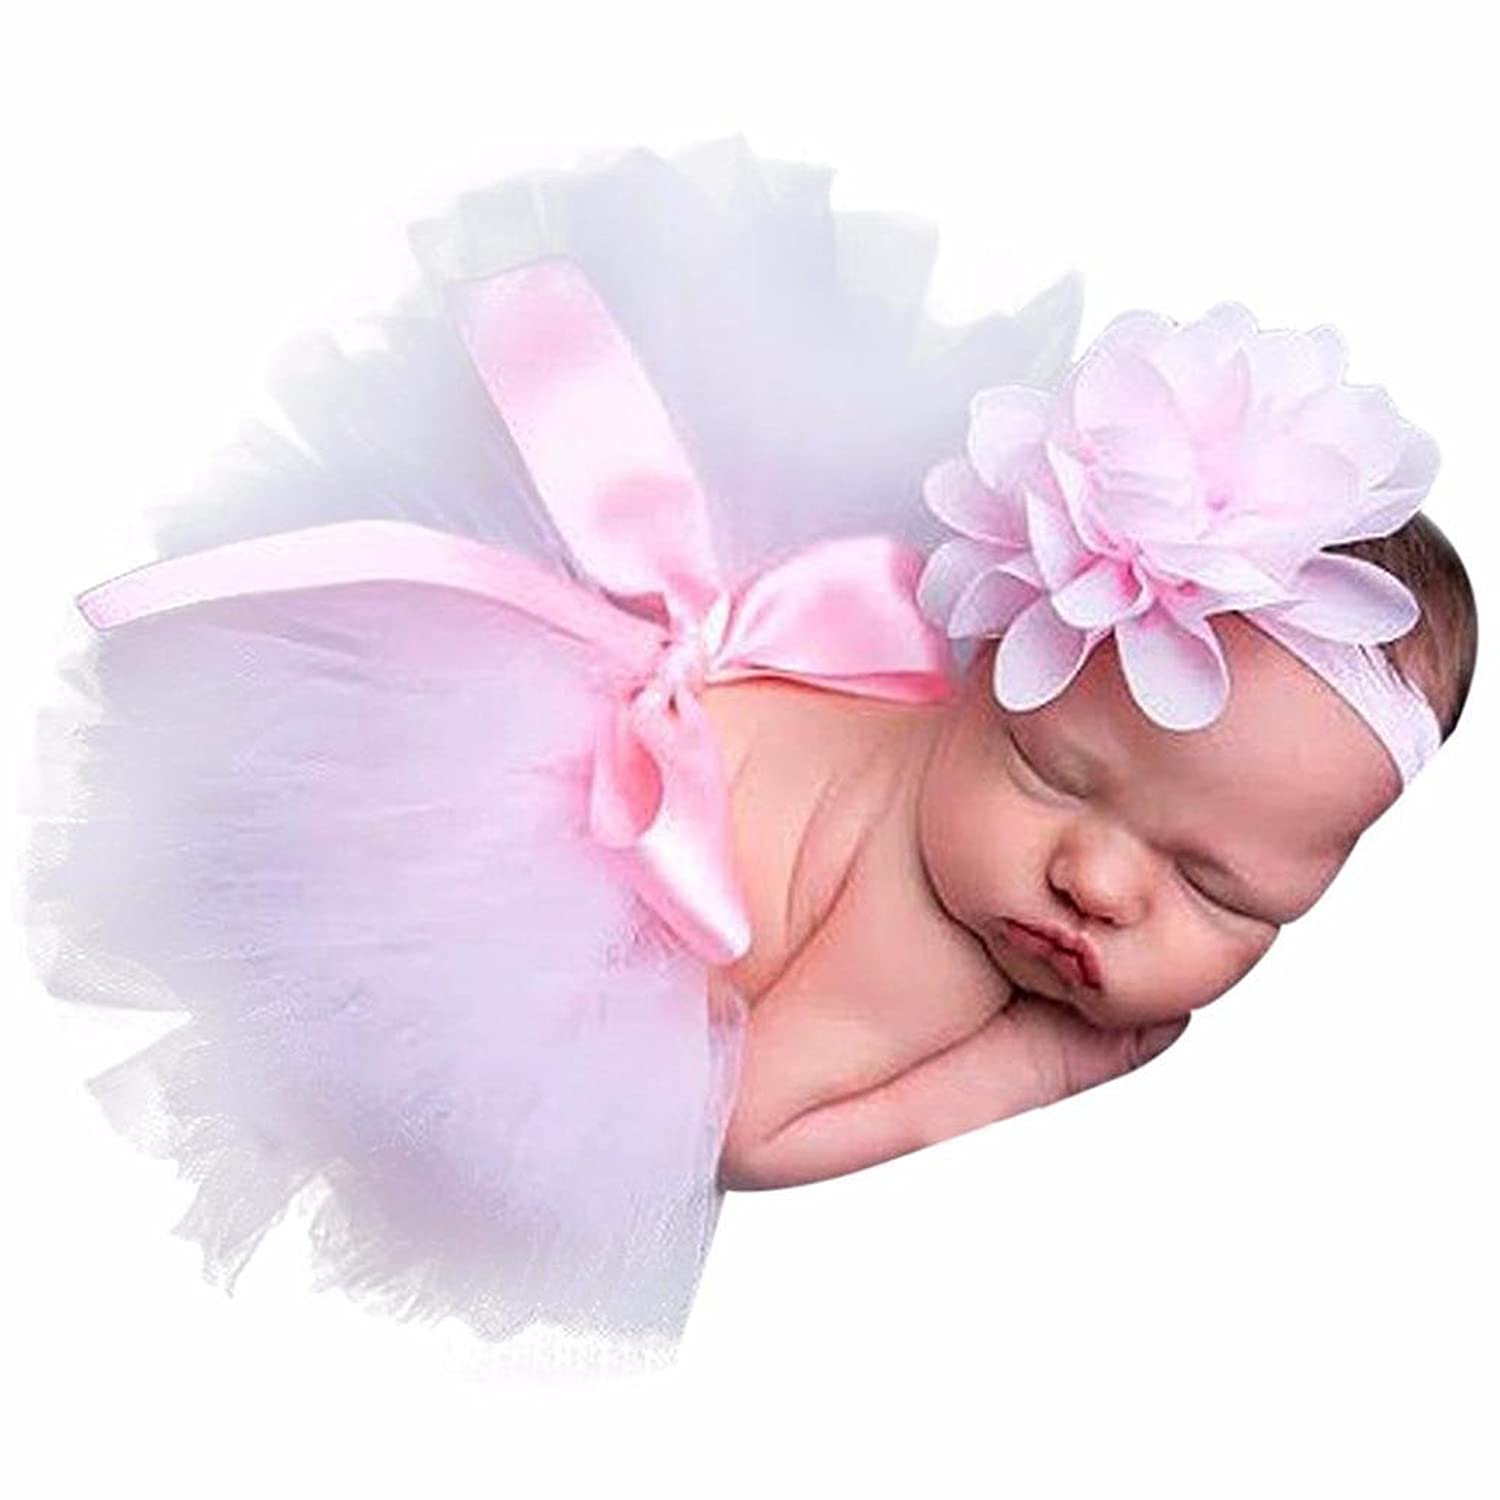 02d288cd5763 Amazon.com: BlingKingdom Newborn Baby Girls Photo Photography Prop Tutu  Skirt Dress Headband 0-4 Month (Pink): Clothing